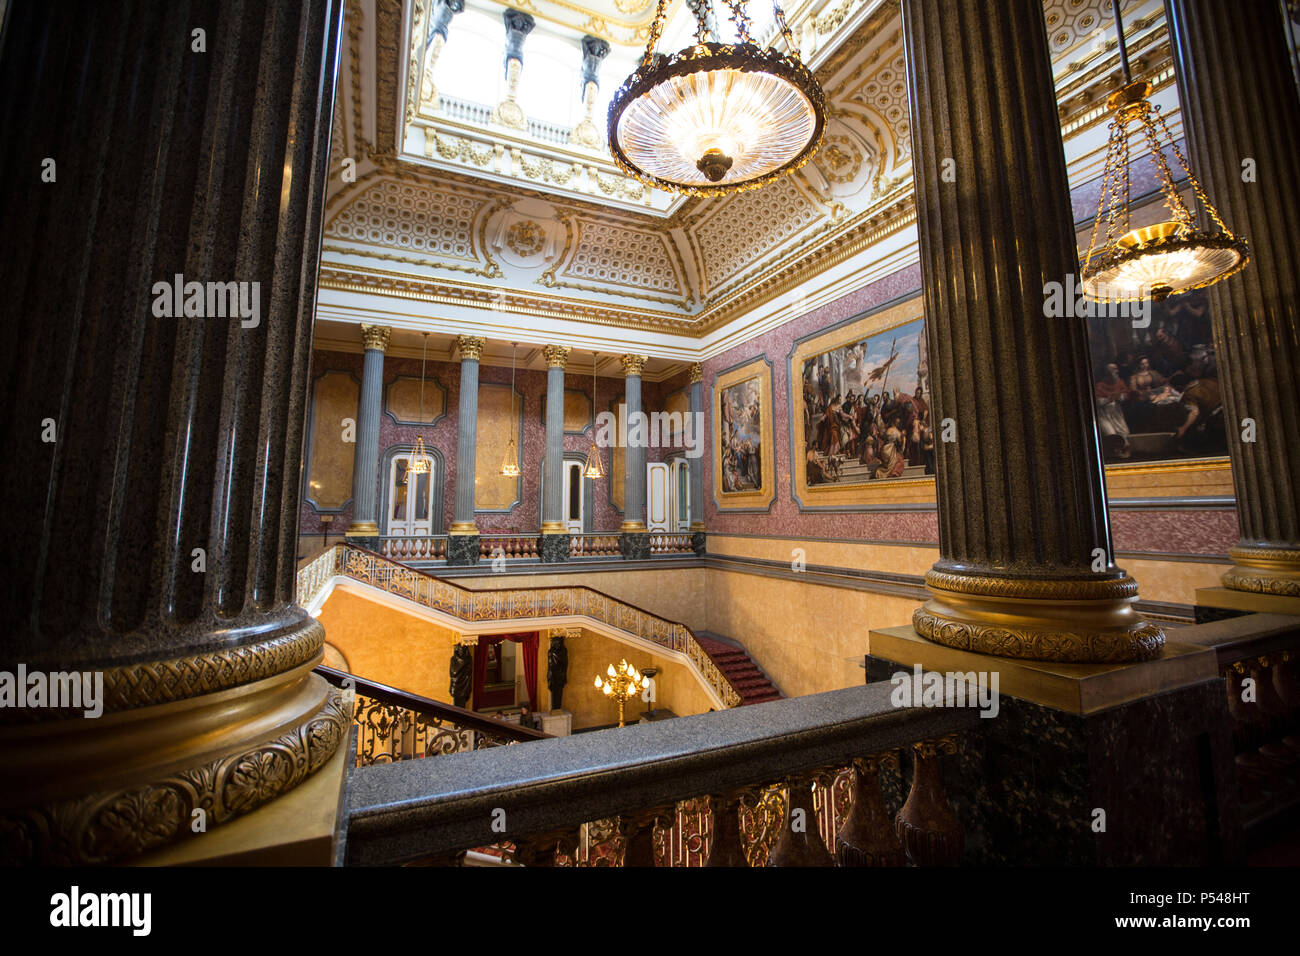 Interior photographs showing the Grand Hall and staircase of Lancaster House, managed and run by The United Kingdom Foreign & Commonwealth Office, UK Stock Photo